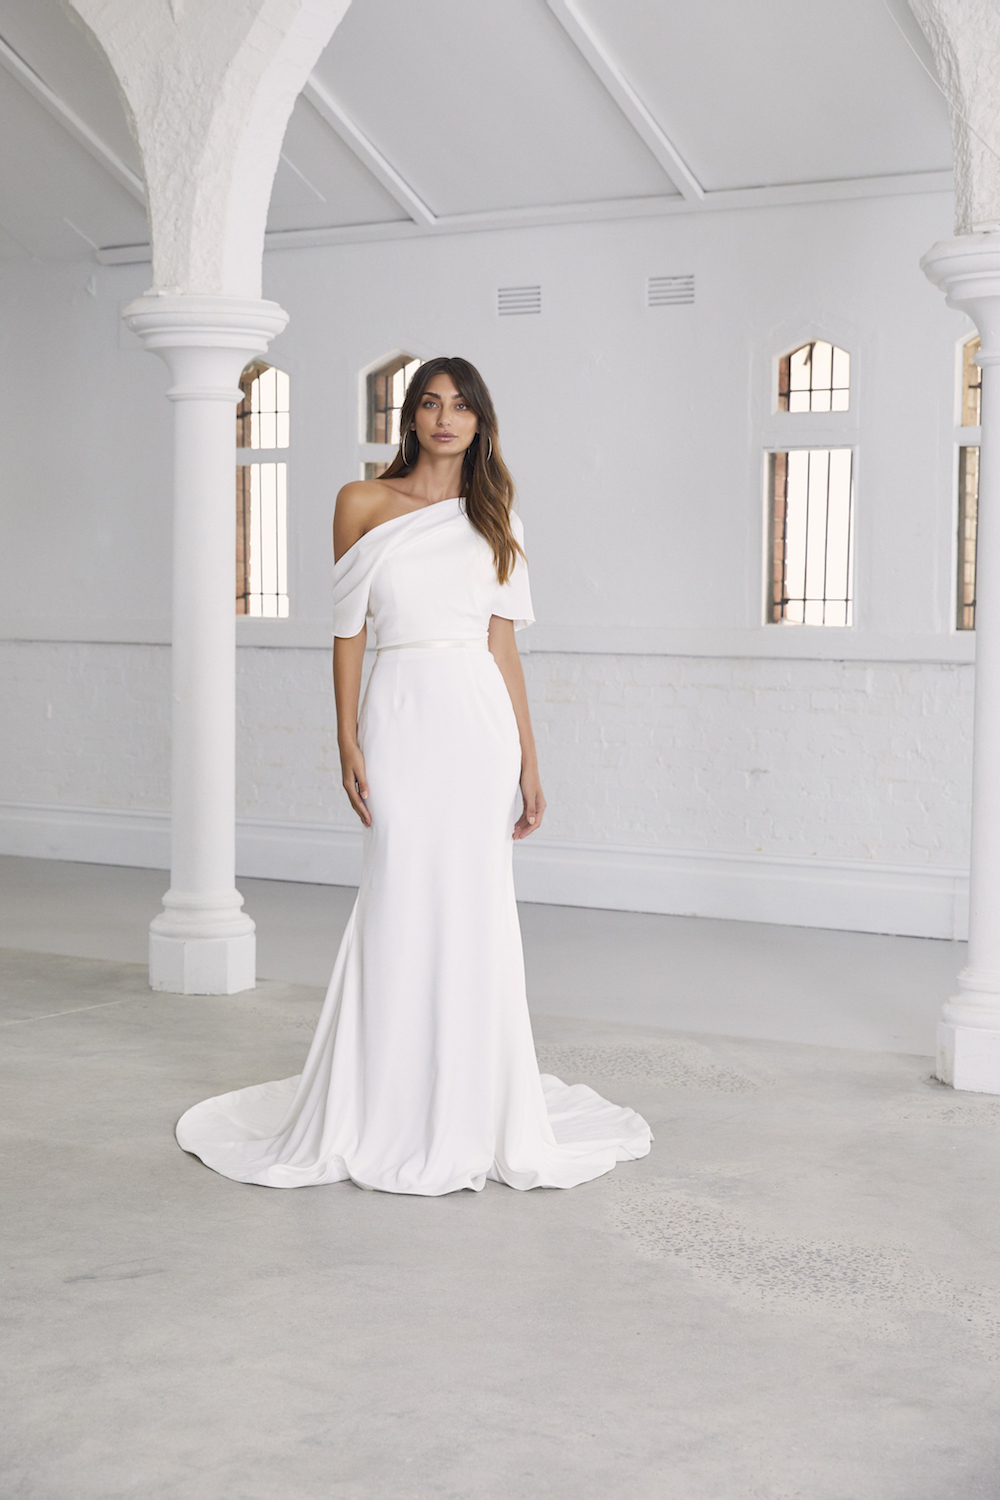 Abella wedding dress by Amaline Vitale Ceremony Collection featured on LOVE FIND CO.